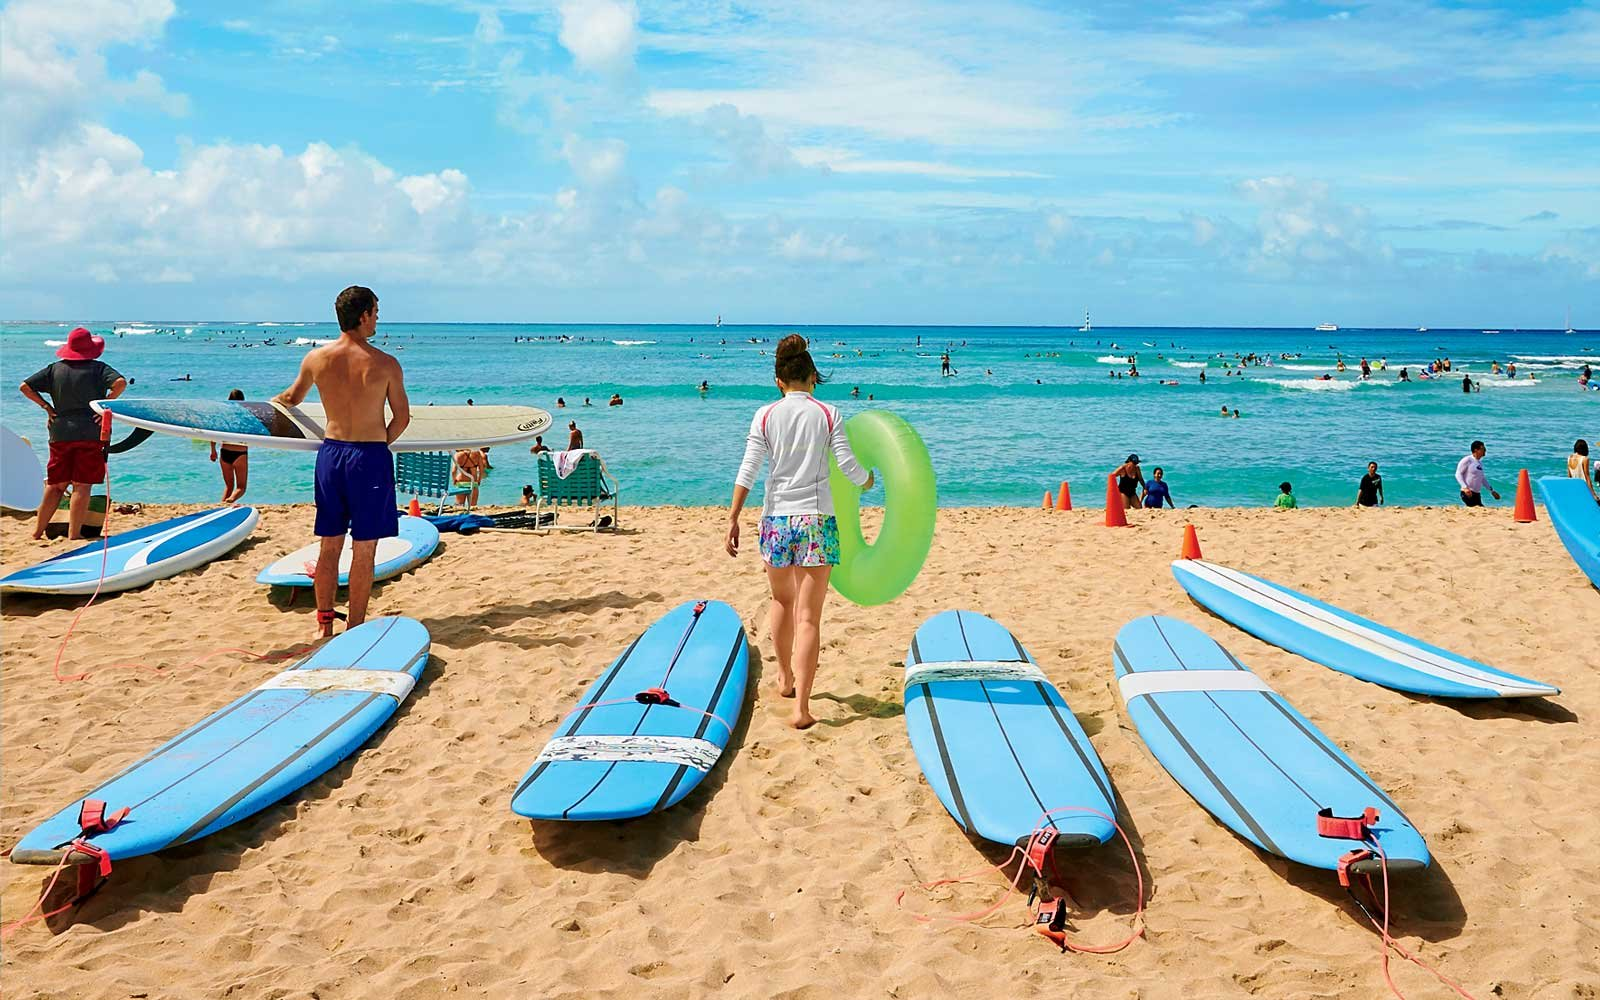 Surfers on Waikiki Beach, Hawaii